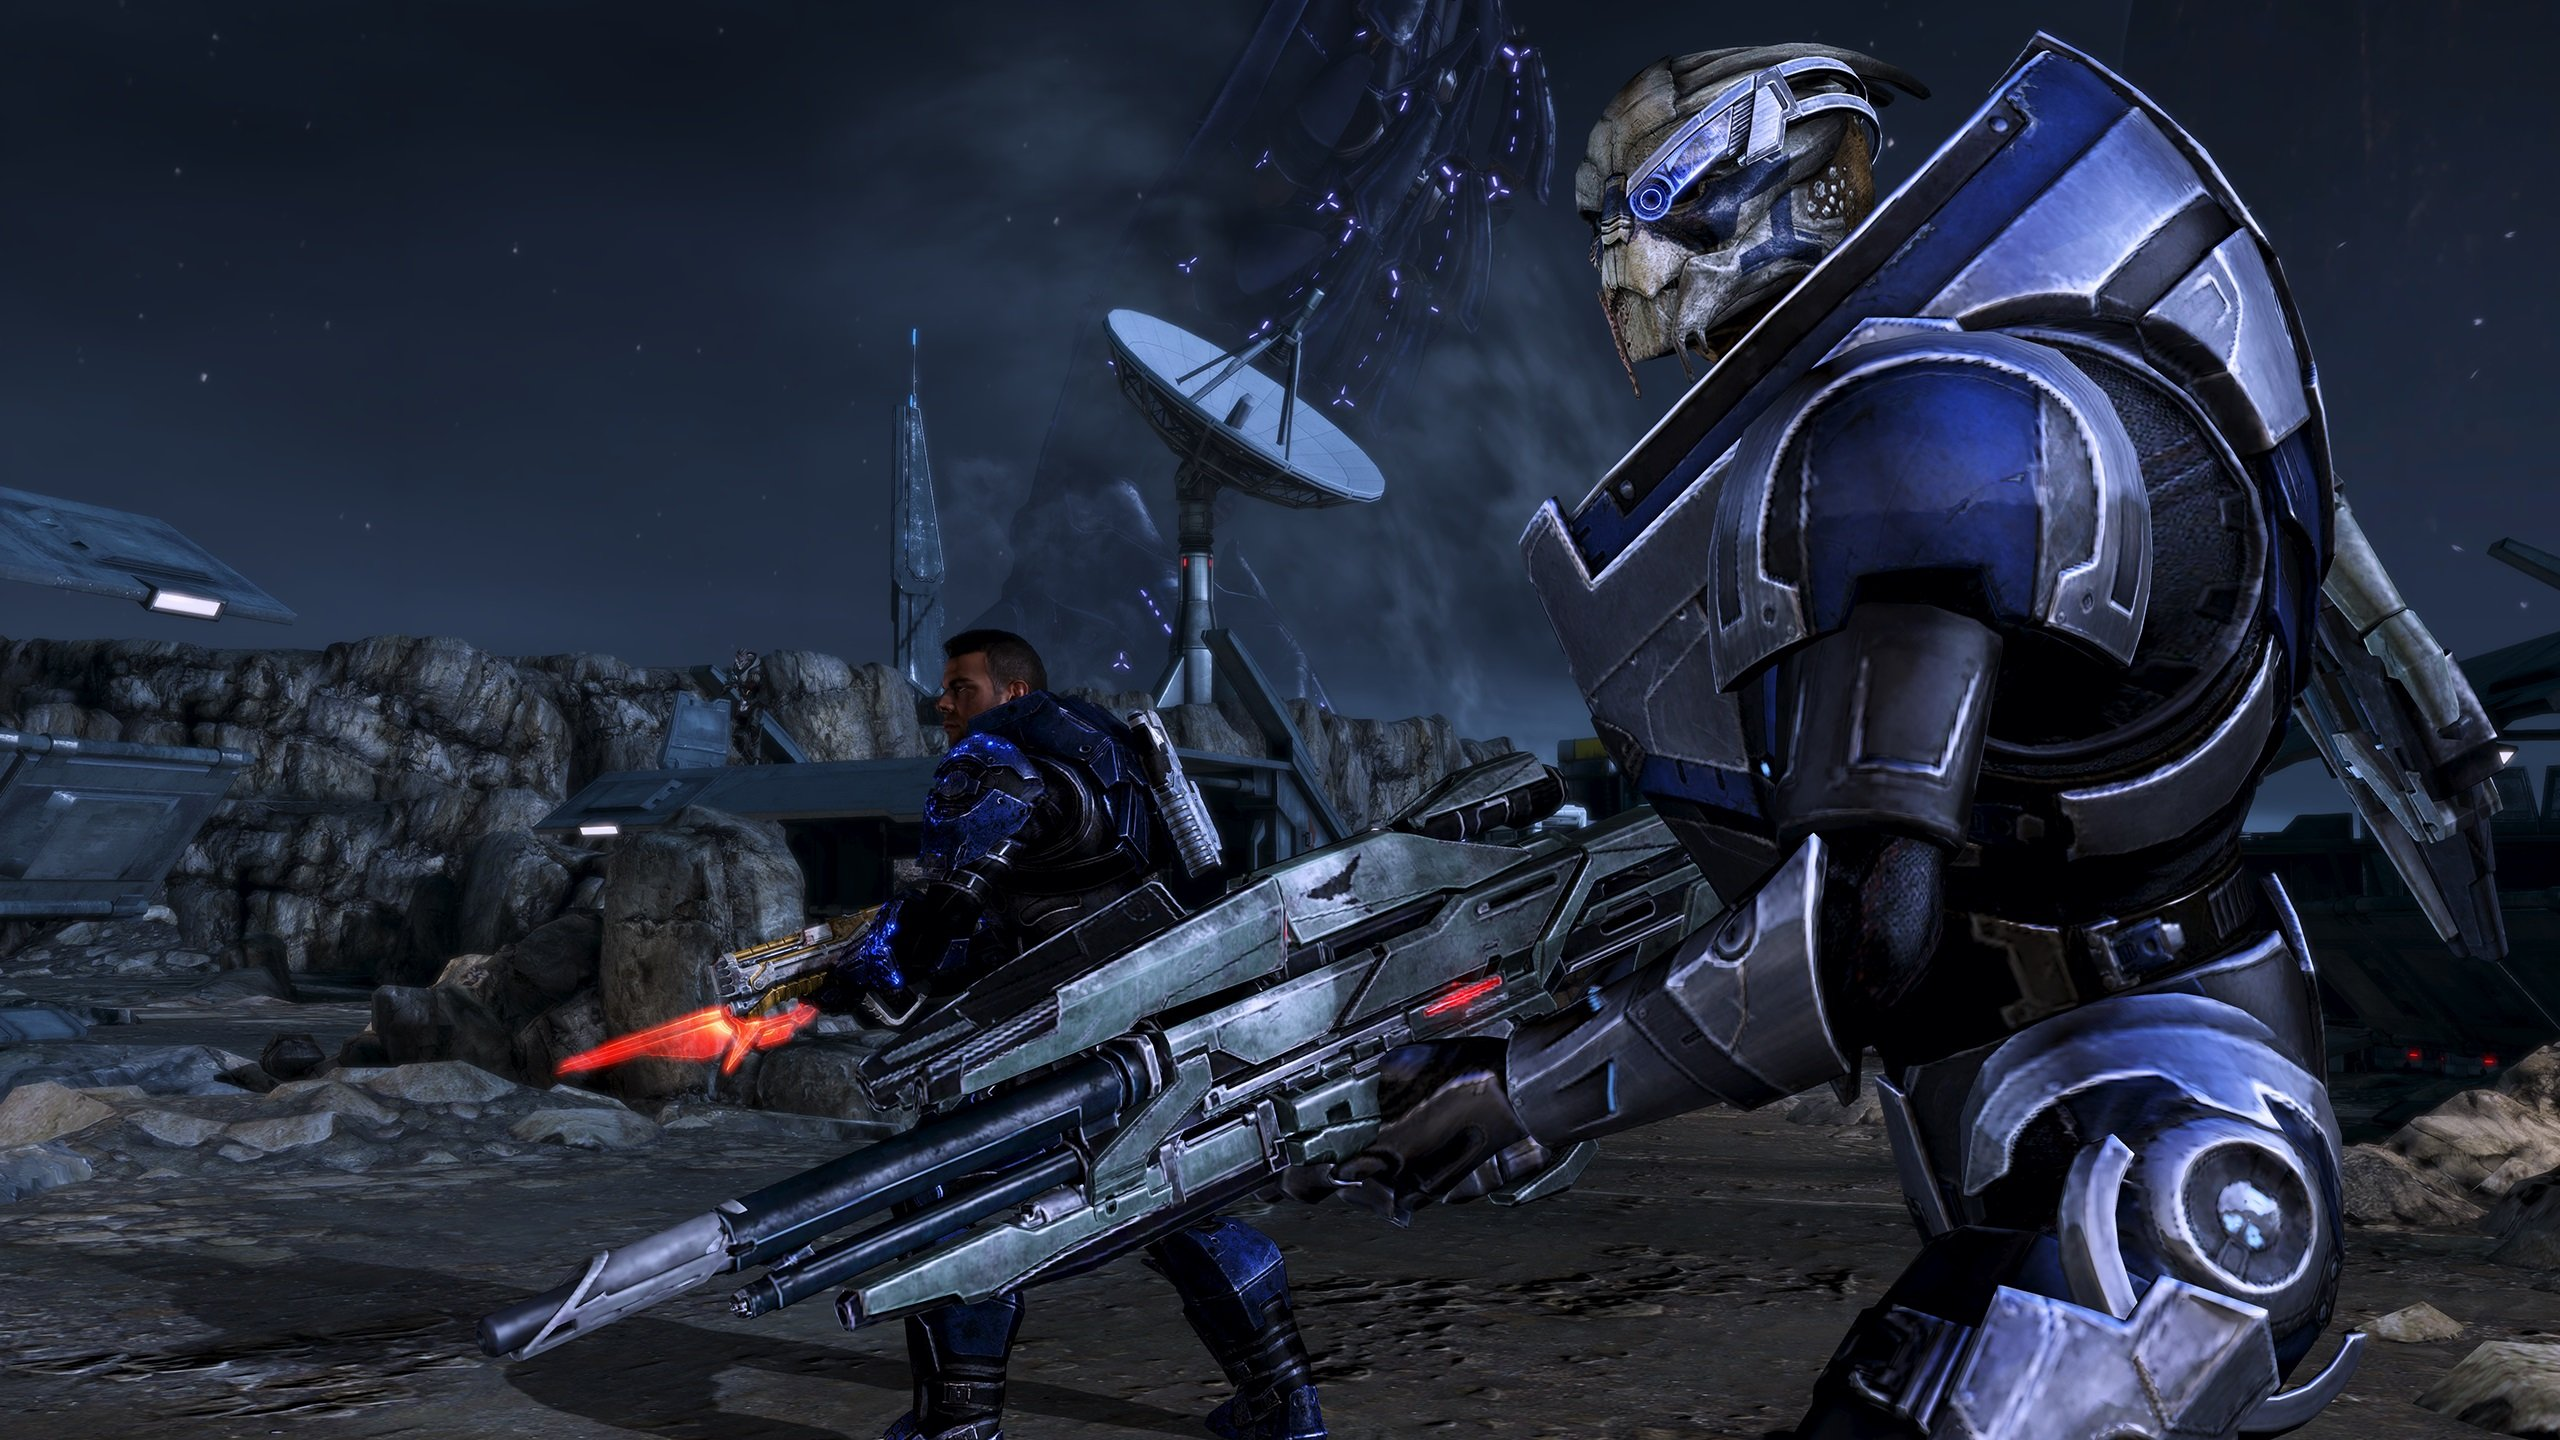 Everyone knows the Mass Effect trilogy remaster is real but EA just refuses to announce it already screenshot